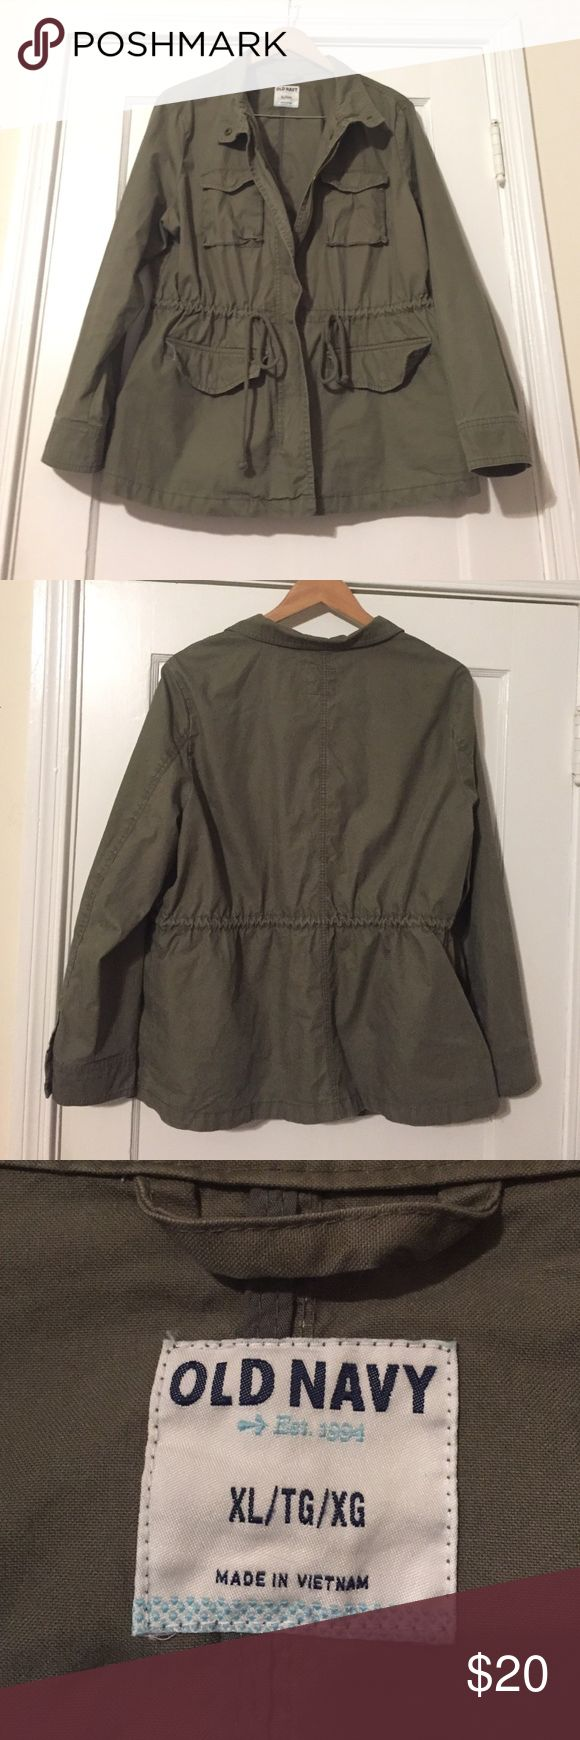 Olive Green Military Jacket Olive Green Military Jacket from Old Navy - Very good used condition! Very comfortable! Waist is adjustable for better fit! Old Navy Jackets & Coats Utility Jackets